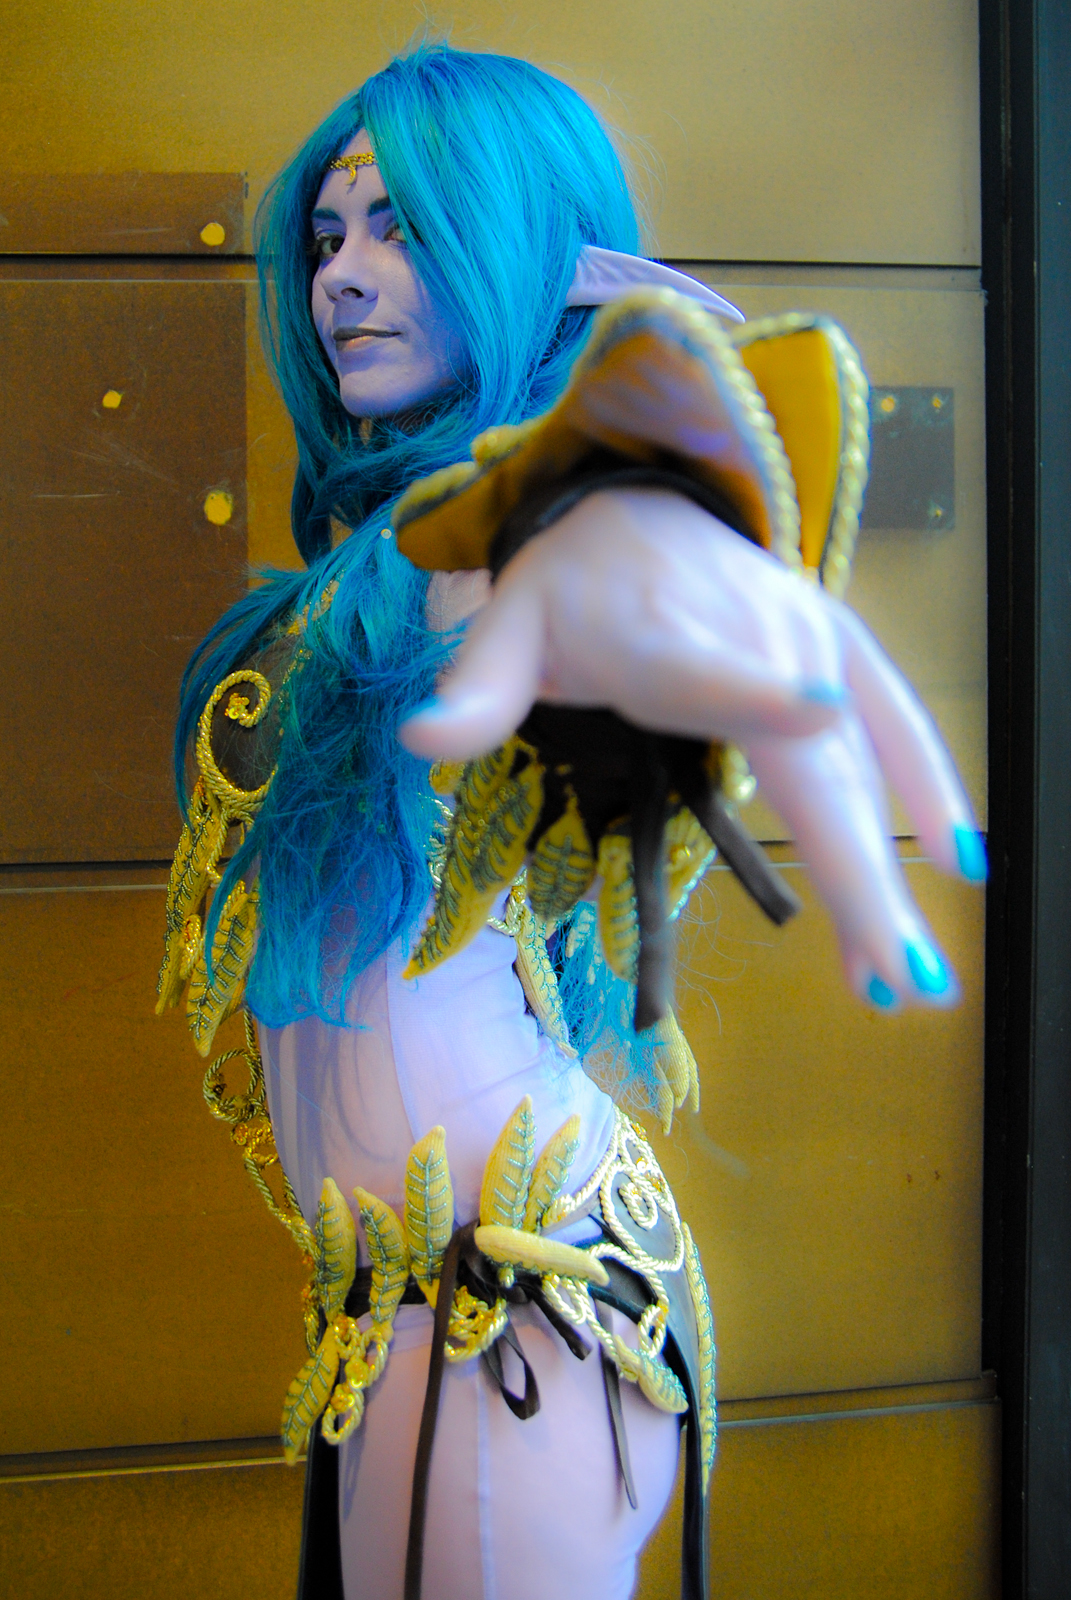 Alathena_Japan Expo_14 by ladymisterya